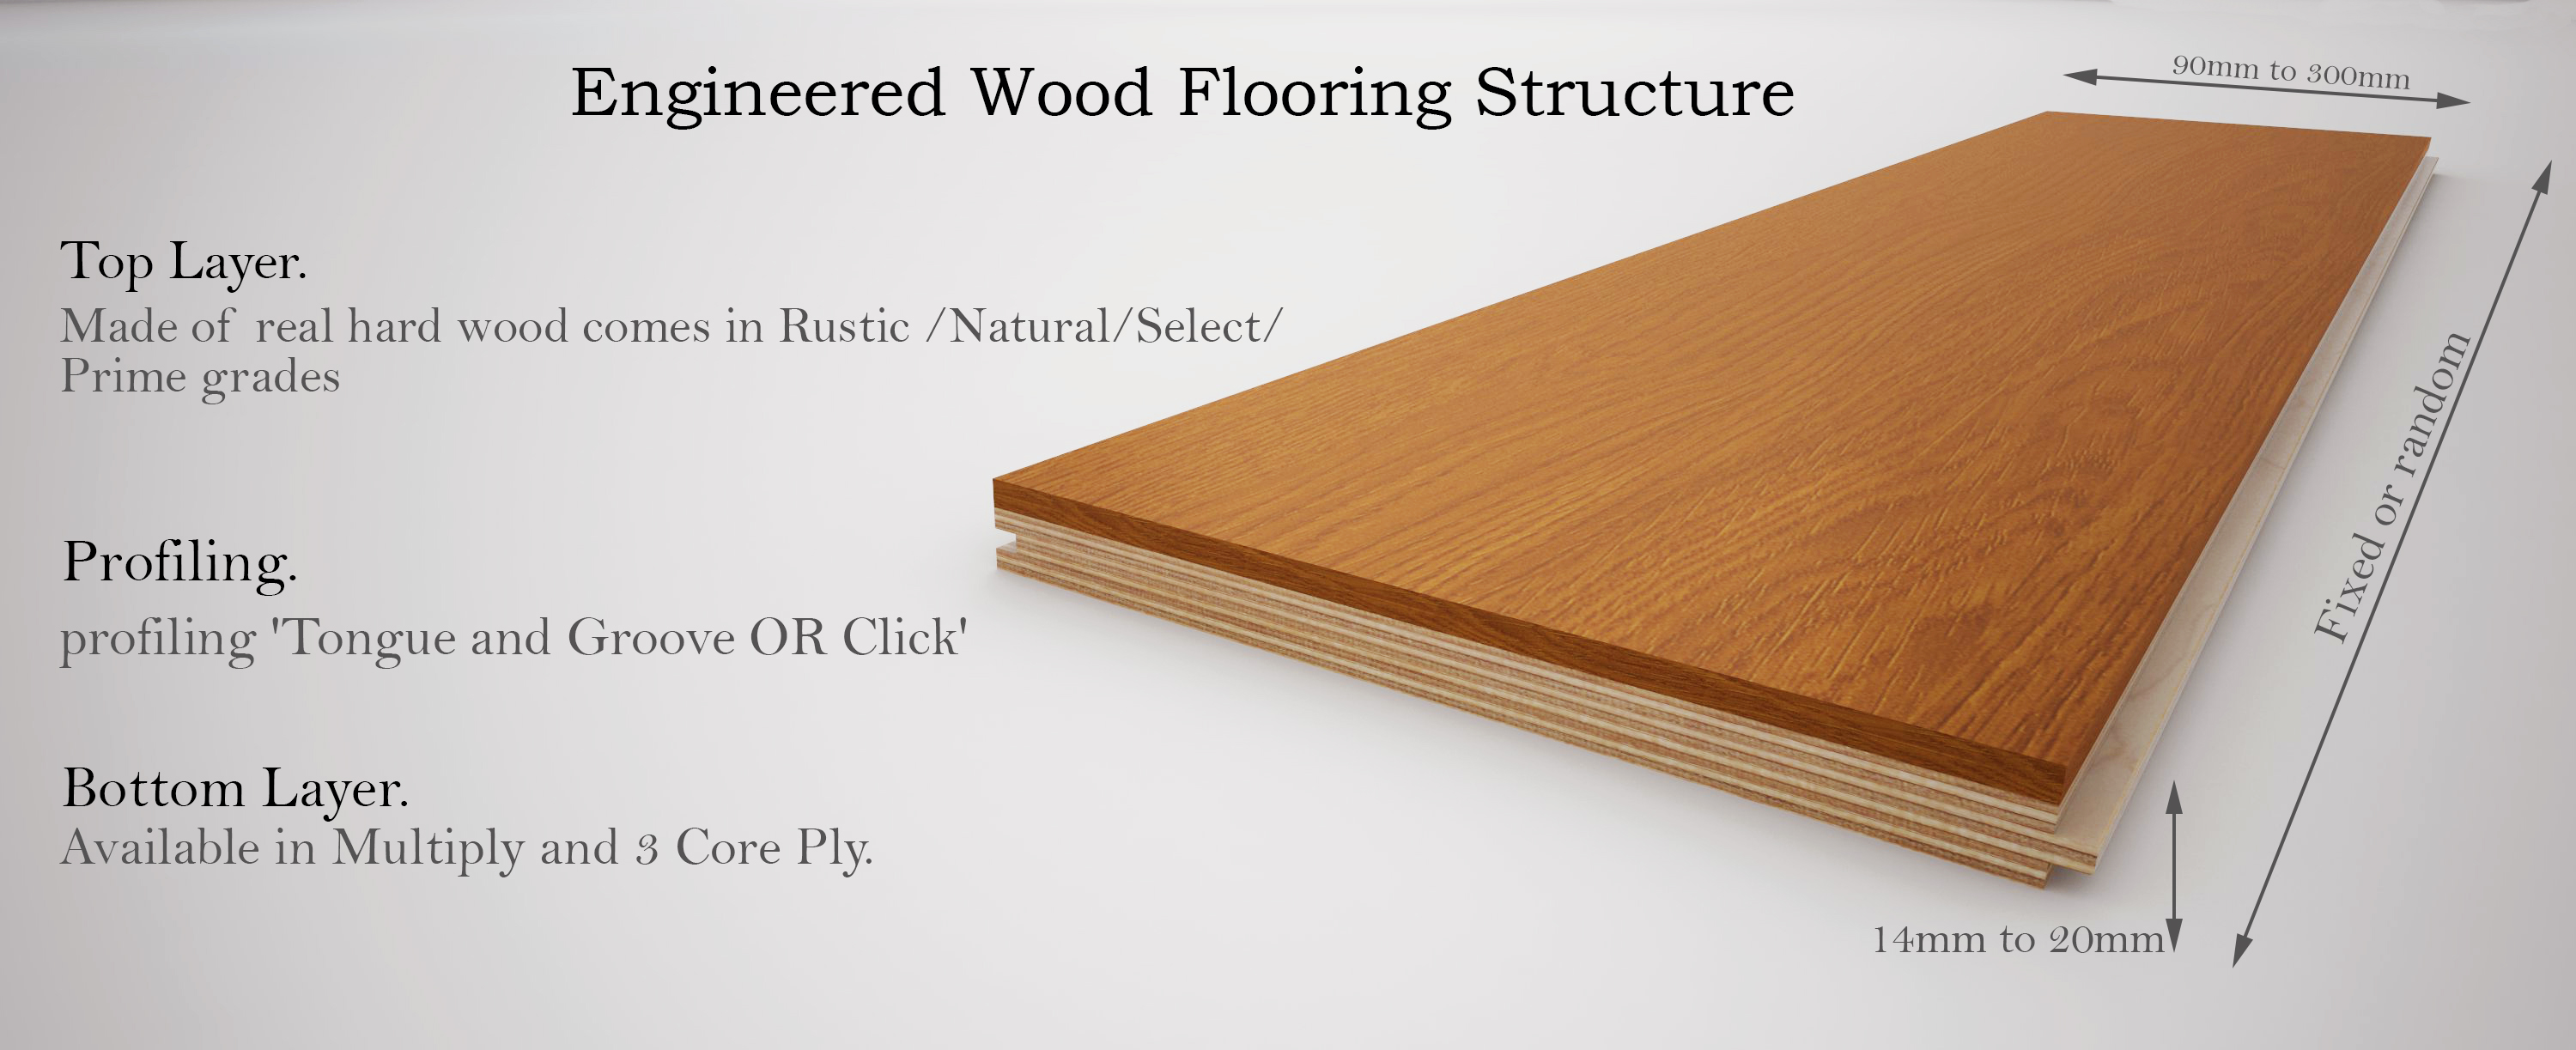 What Is Engineered Wood Flooring Made Of Wood And